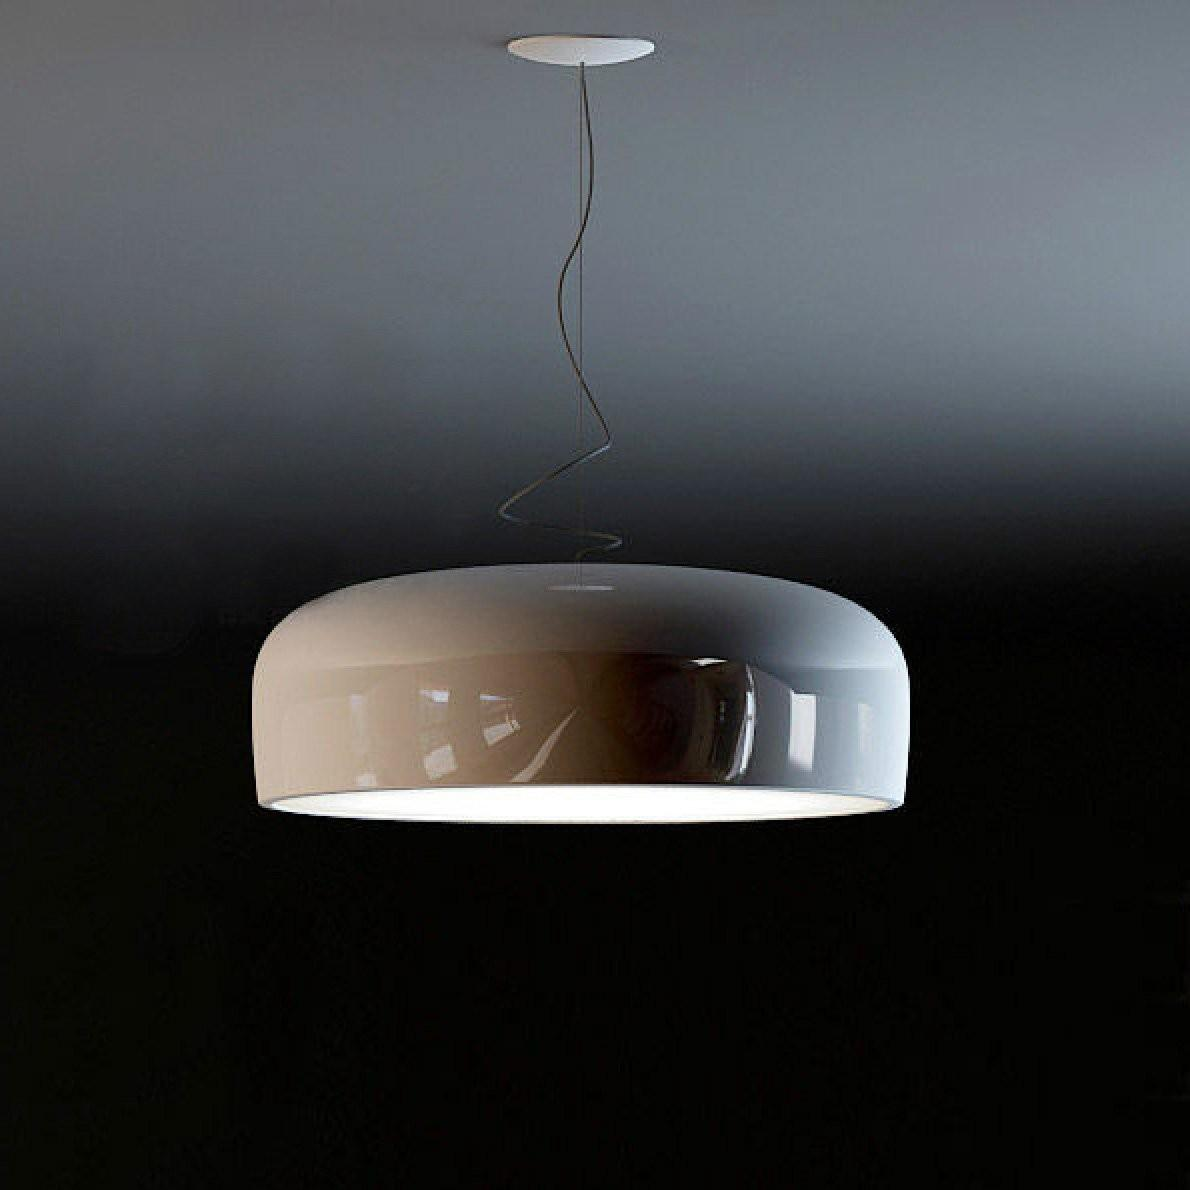 Modern Minimalist Suspension Pendant Ceiling Light